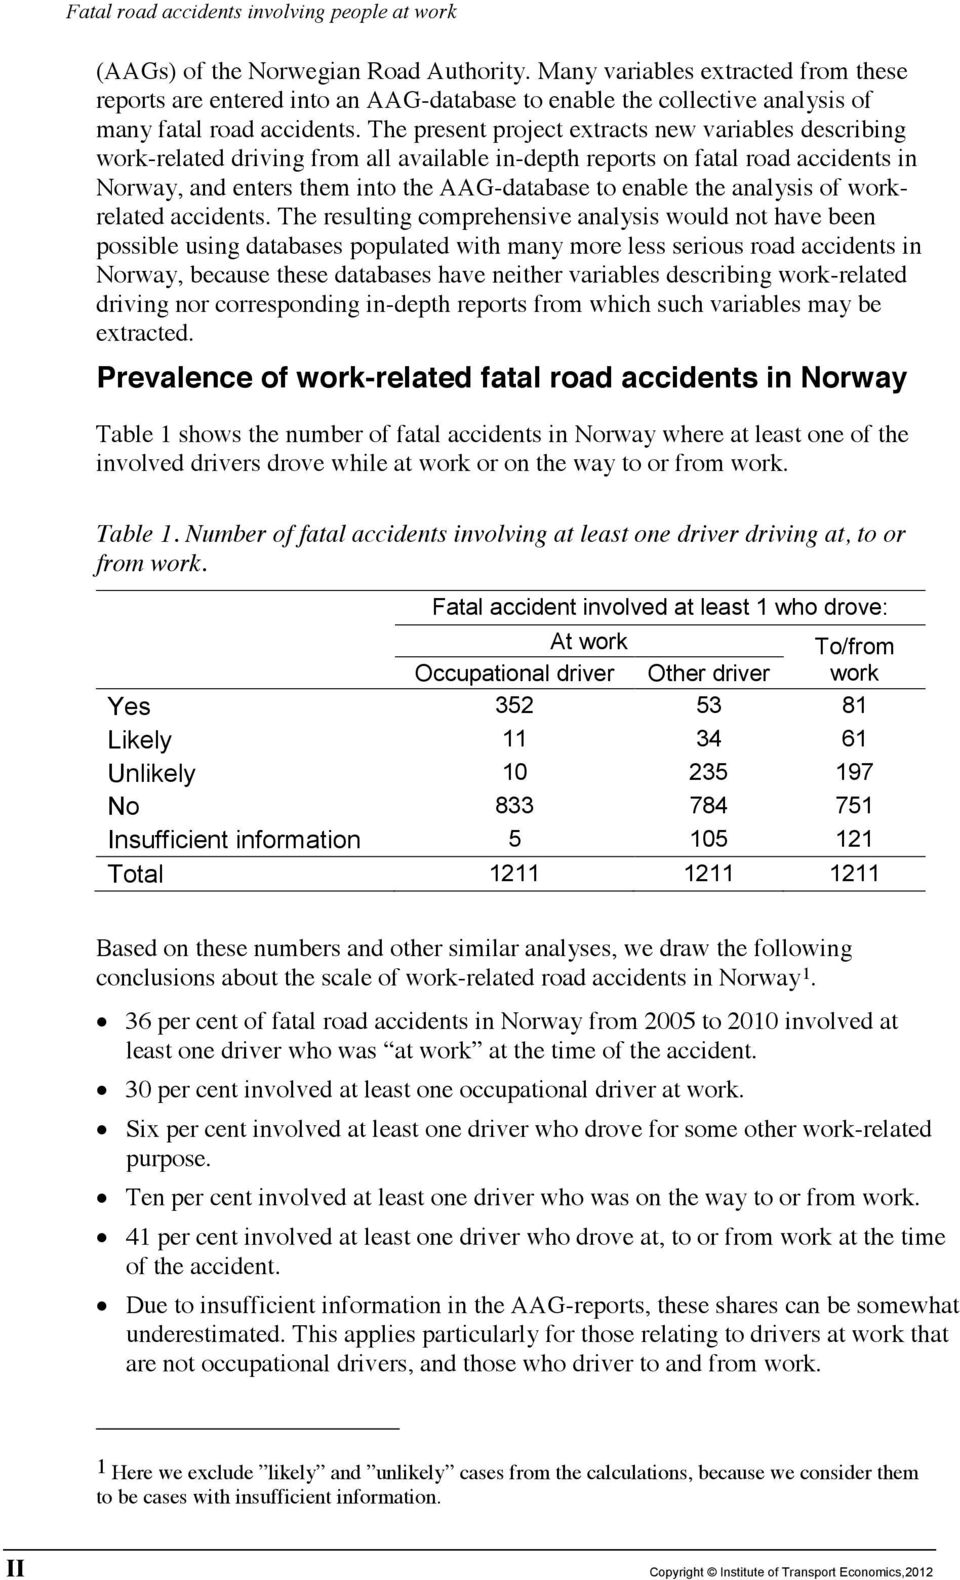 The present project extracts new variables describing work-related driving from all available in-depth reports on fatal road accidents in Norway, and enters them into the AAG-database to enable the